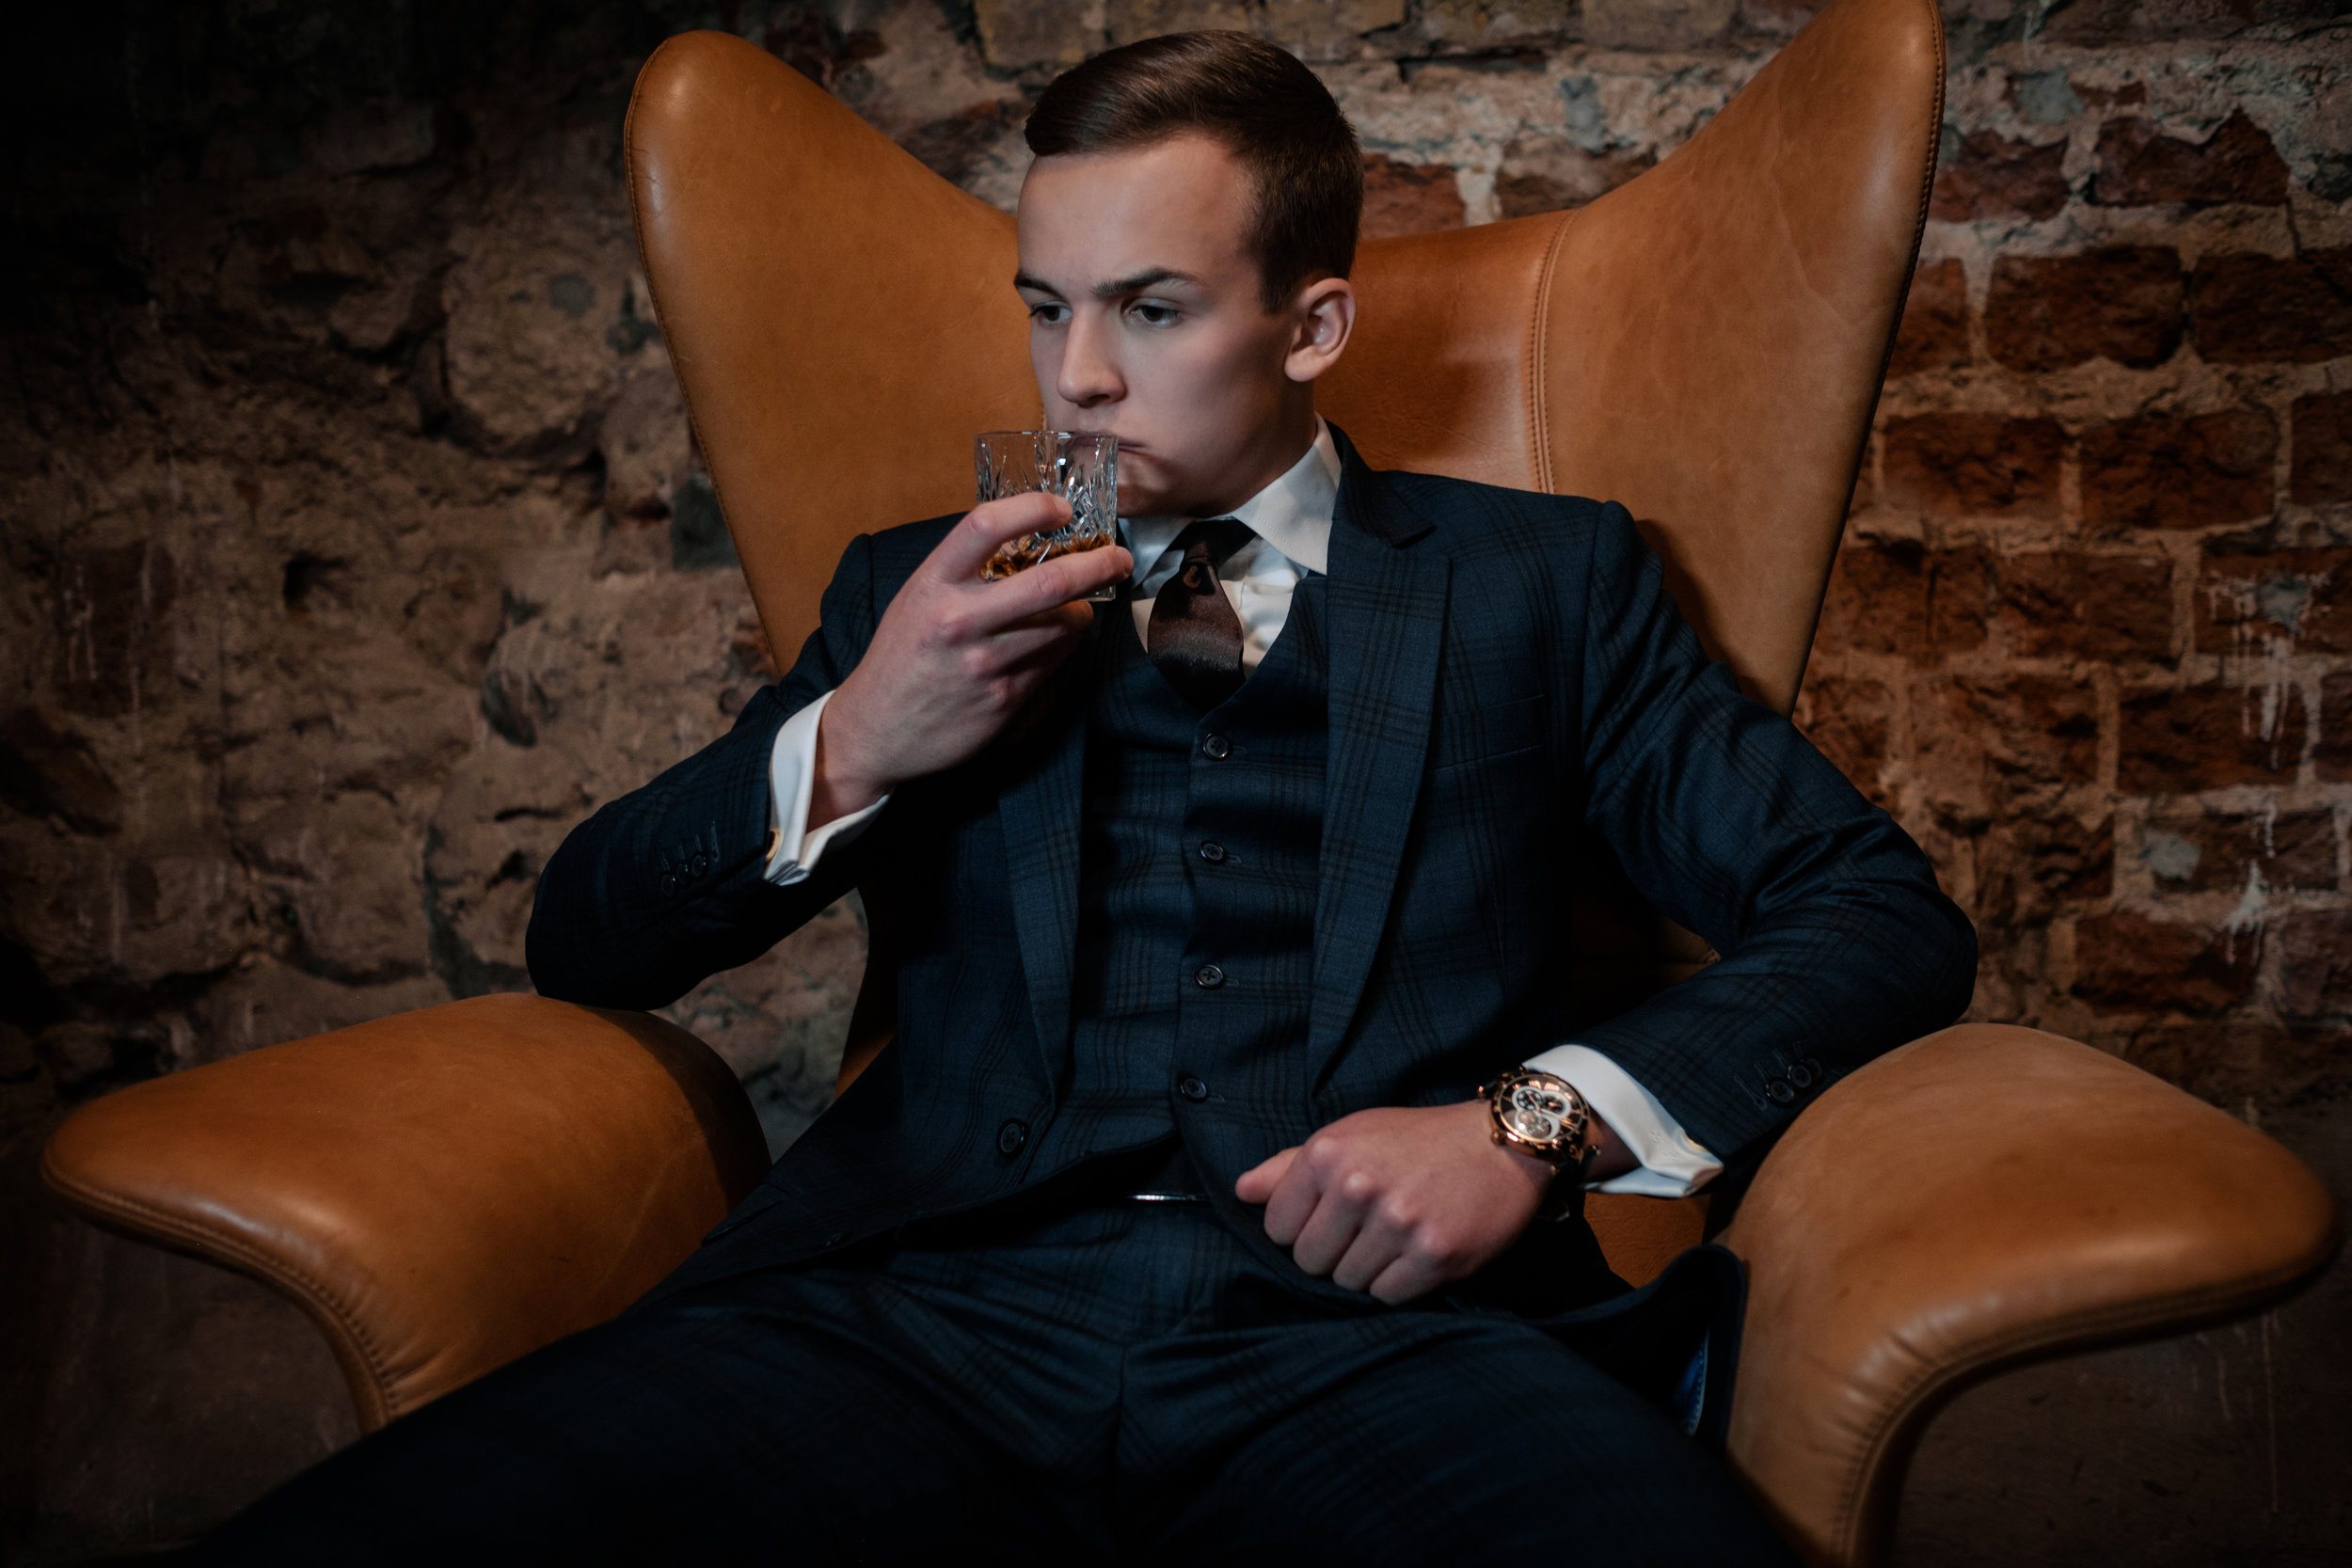 sharp-dressed-dandy-in-a-chair-PZBE2SY.jpg